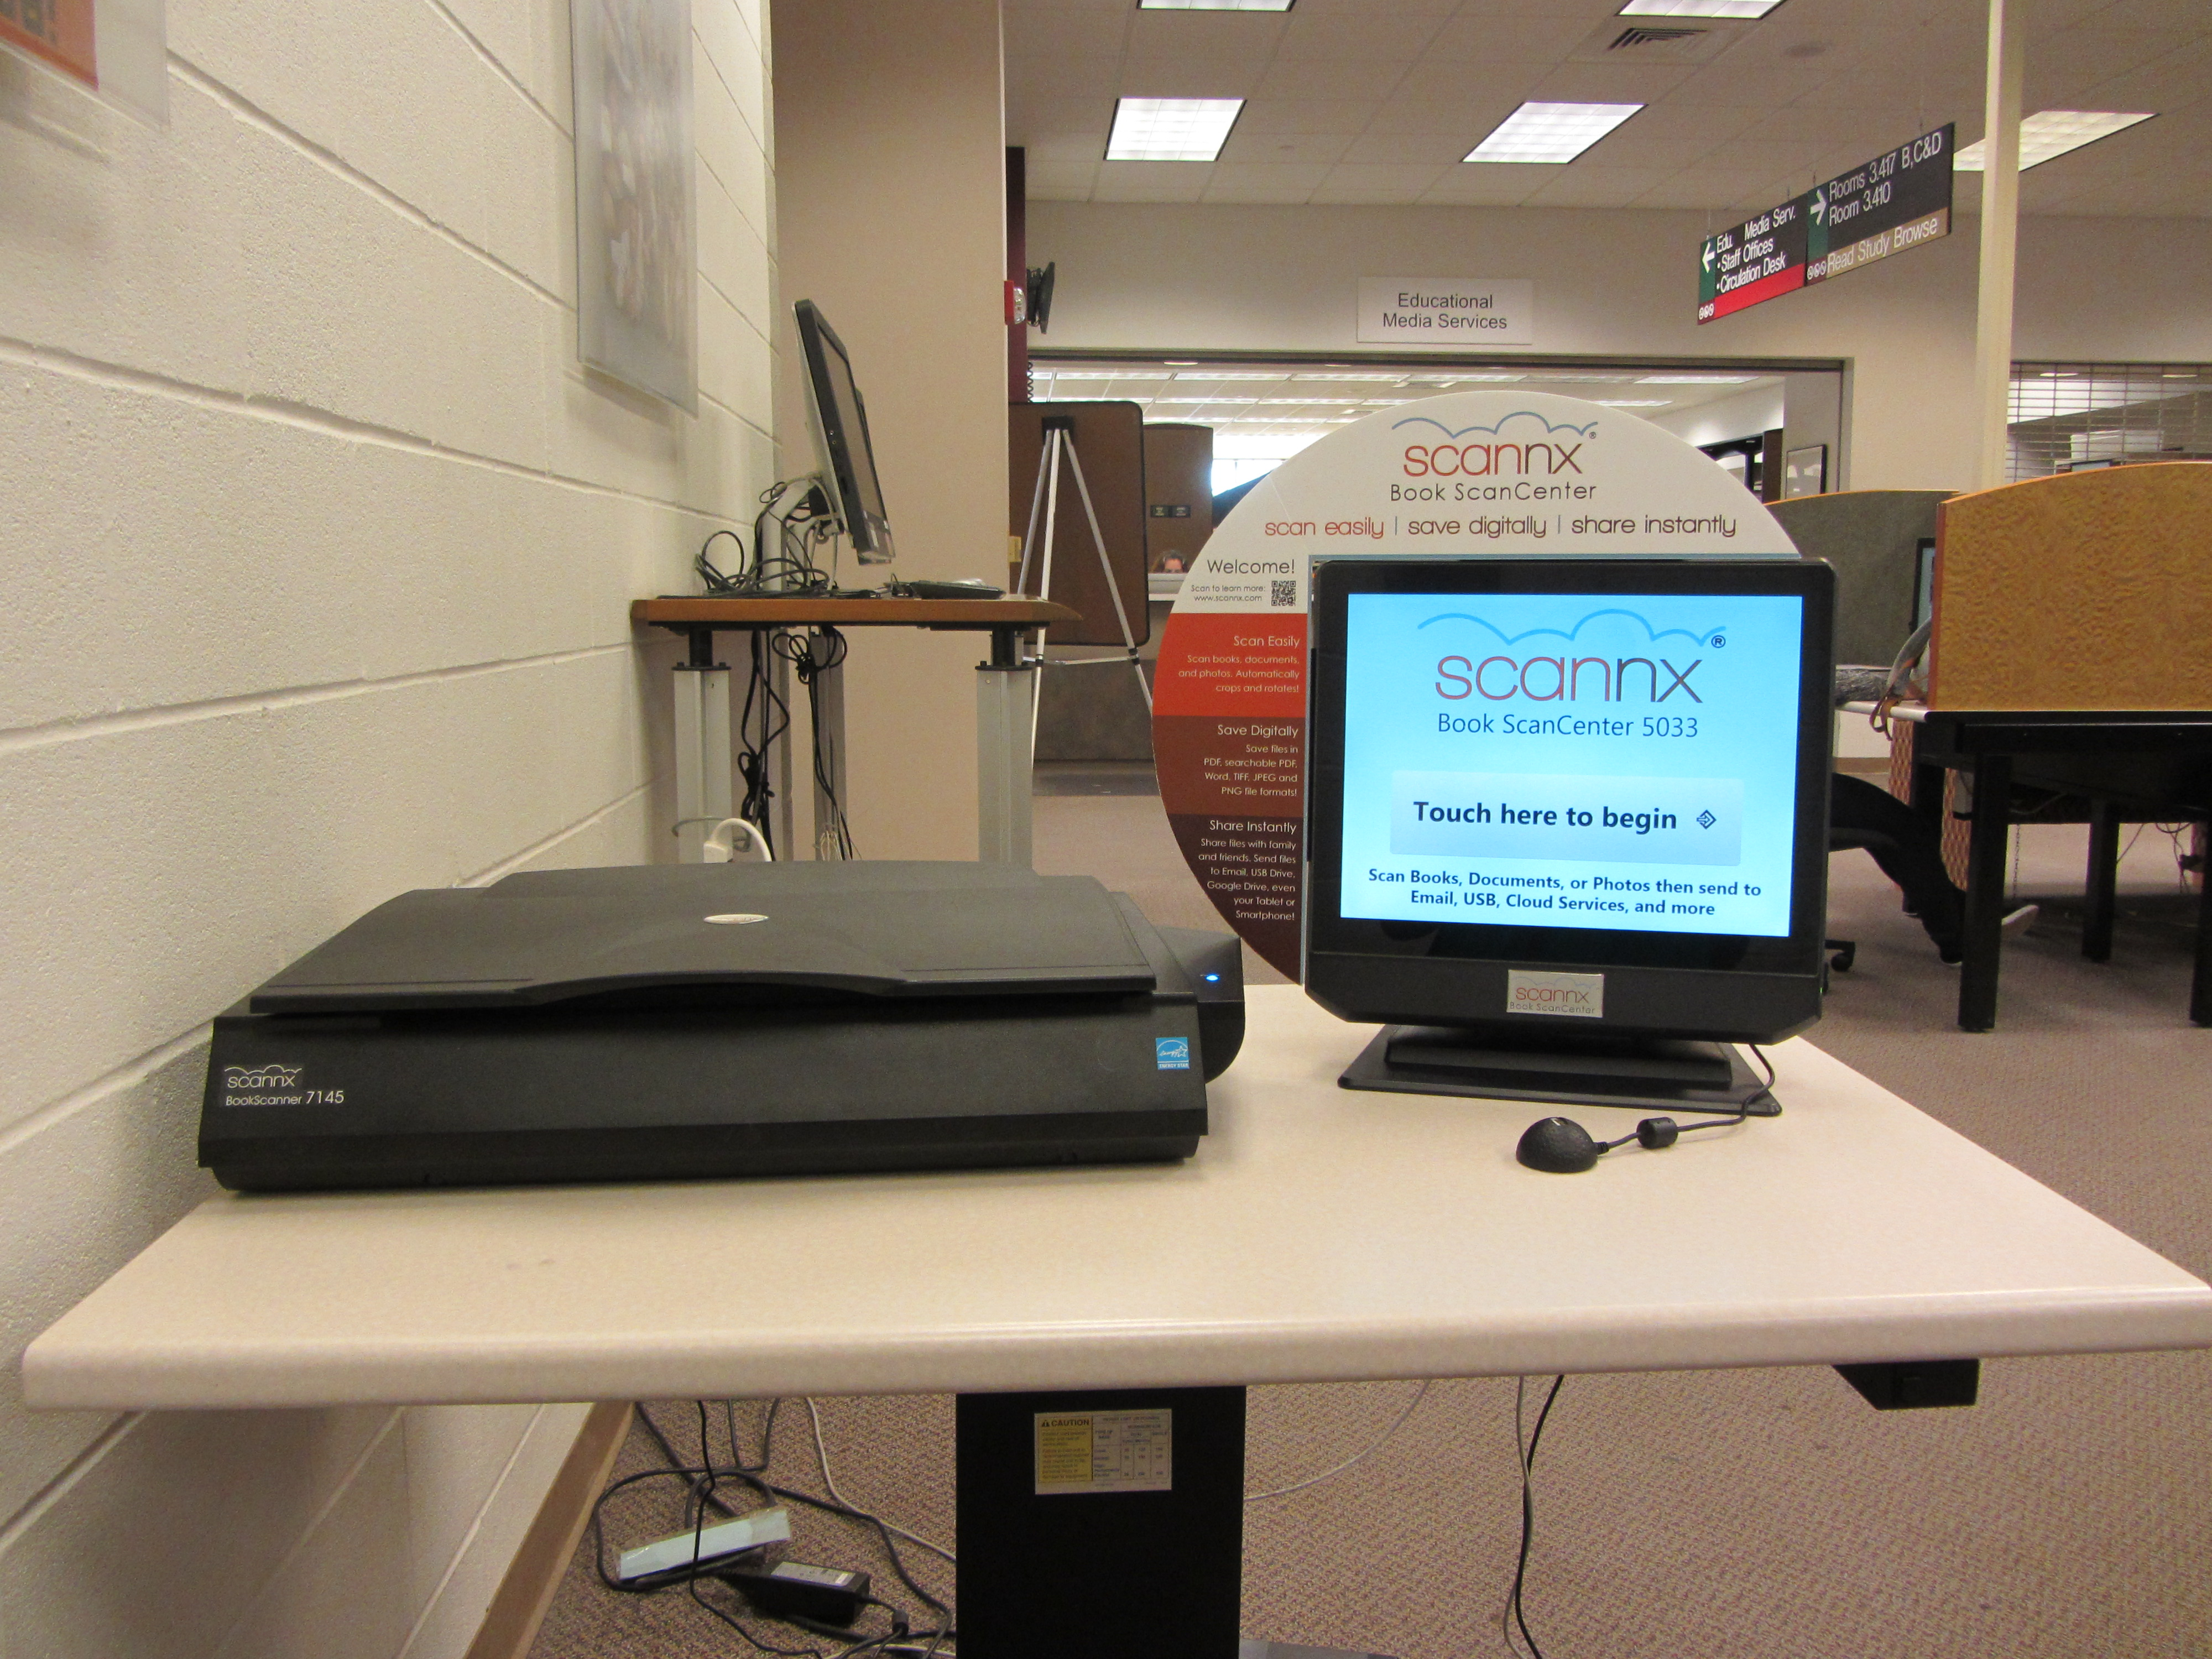 Scannx scanner in the Evan's Library at Texas A&M University